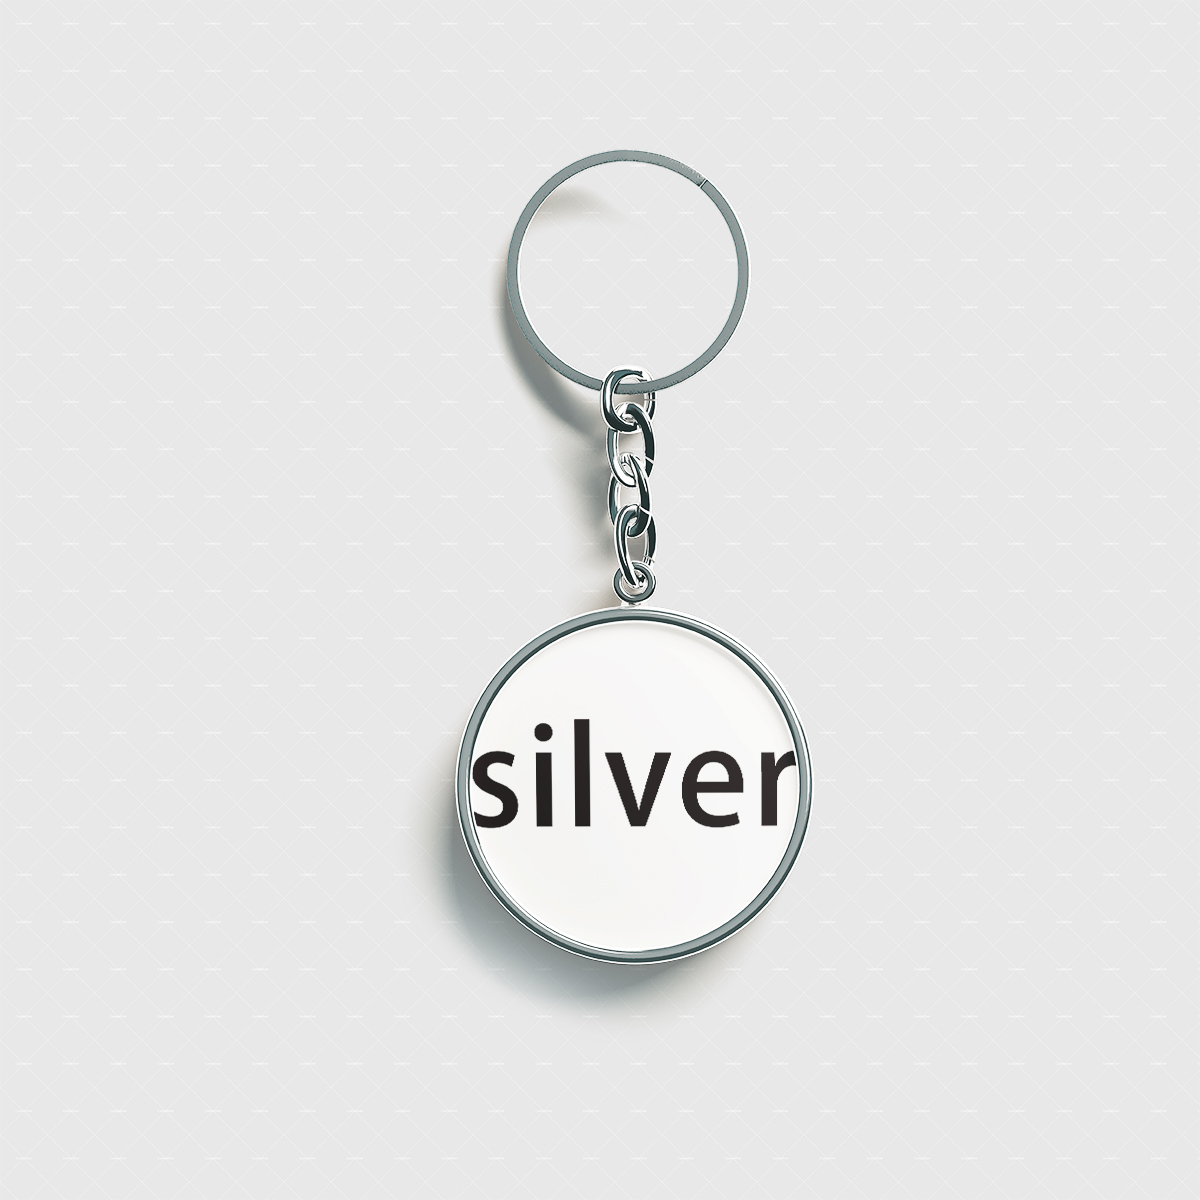 HARVEY Name Keyring Keychain Key Fob